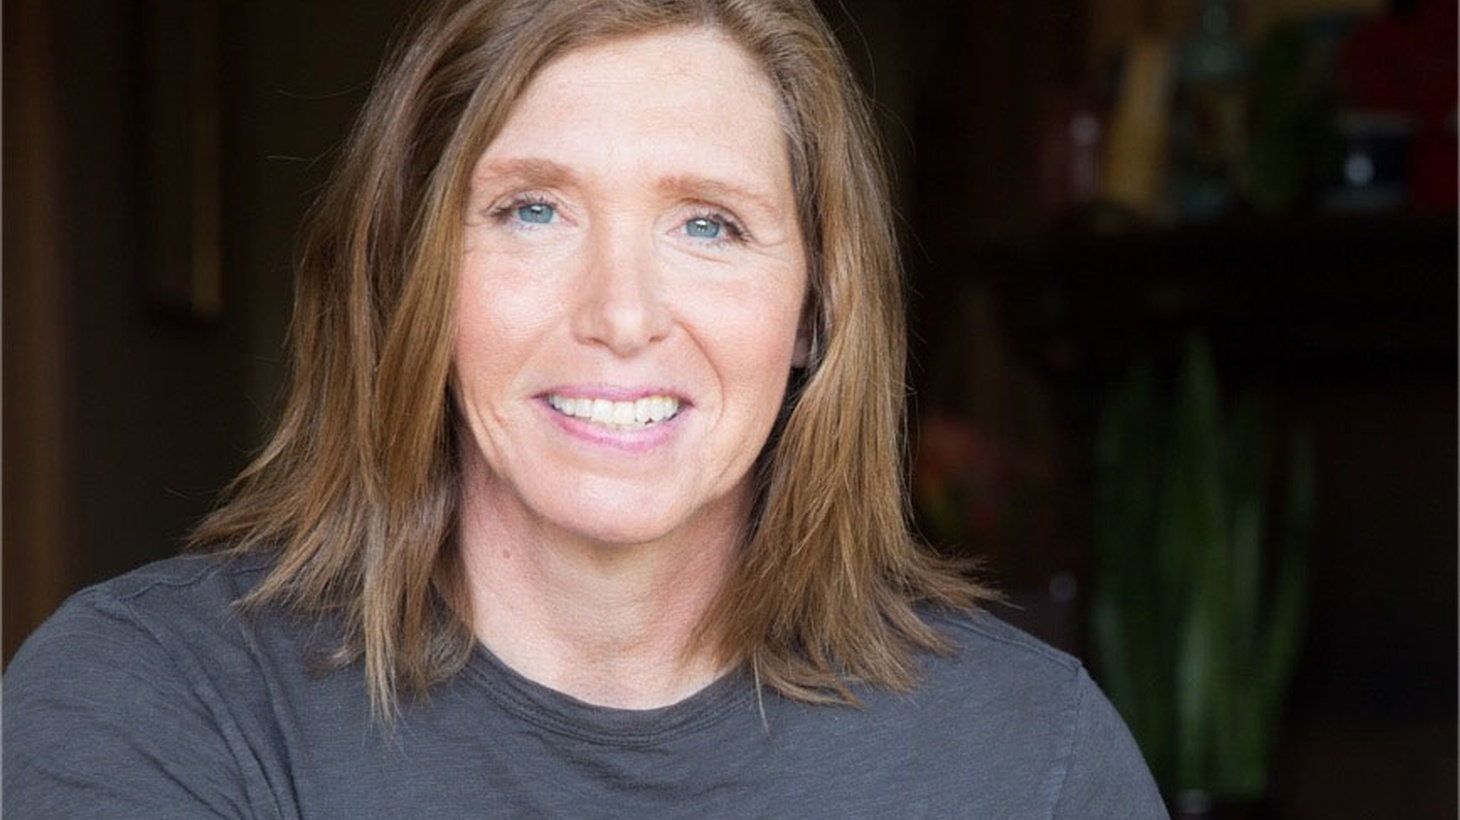 """Patty Schemel was the drummer for Courtney Love's band, Hole. But then she got into drugs, lost it all, and ended up living on the streets of LA. She writes about her journey in her new memoir, """"Hit So Hard."""""""